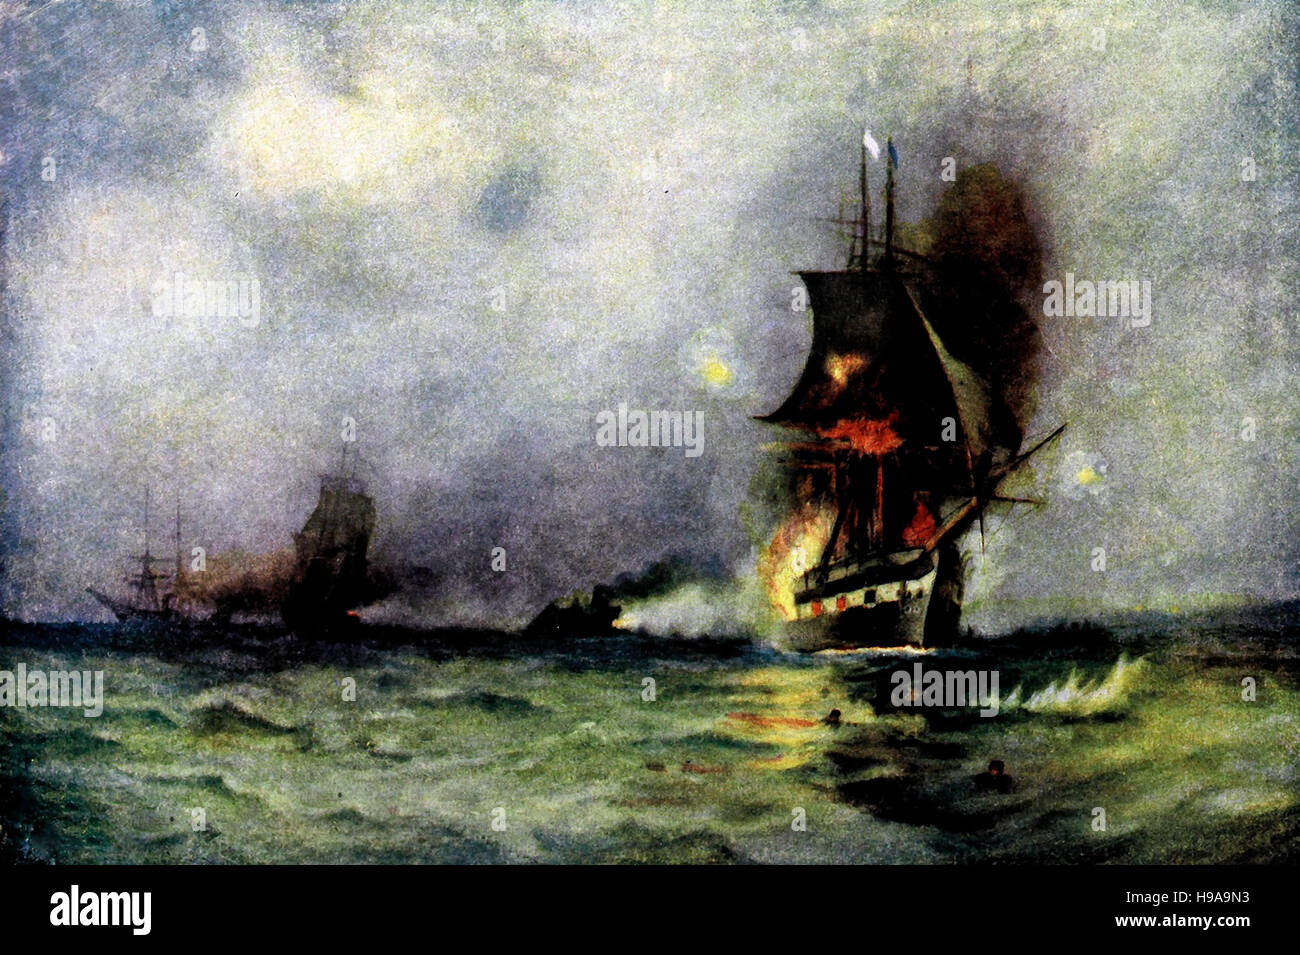 The Last of the Frigate. Naval warfare in the American Civil War. - Stock Image